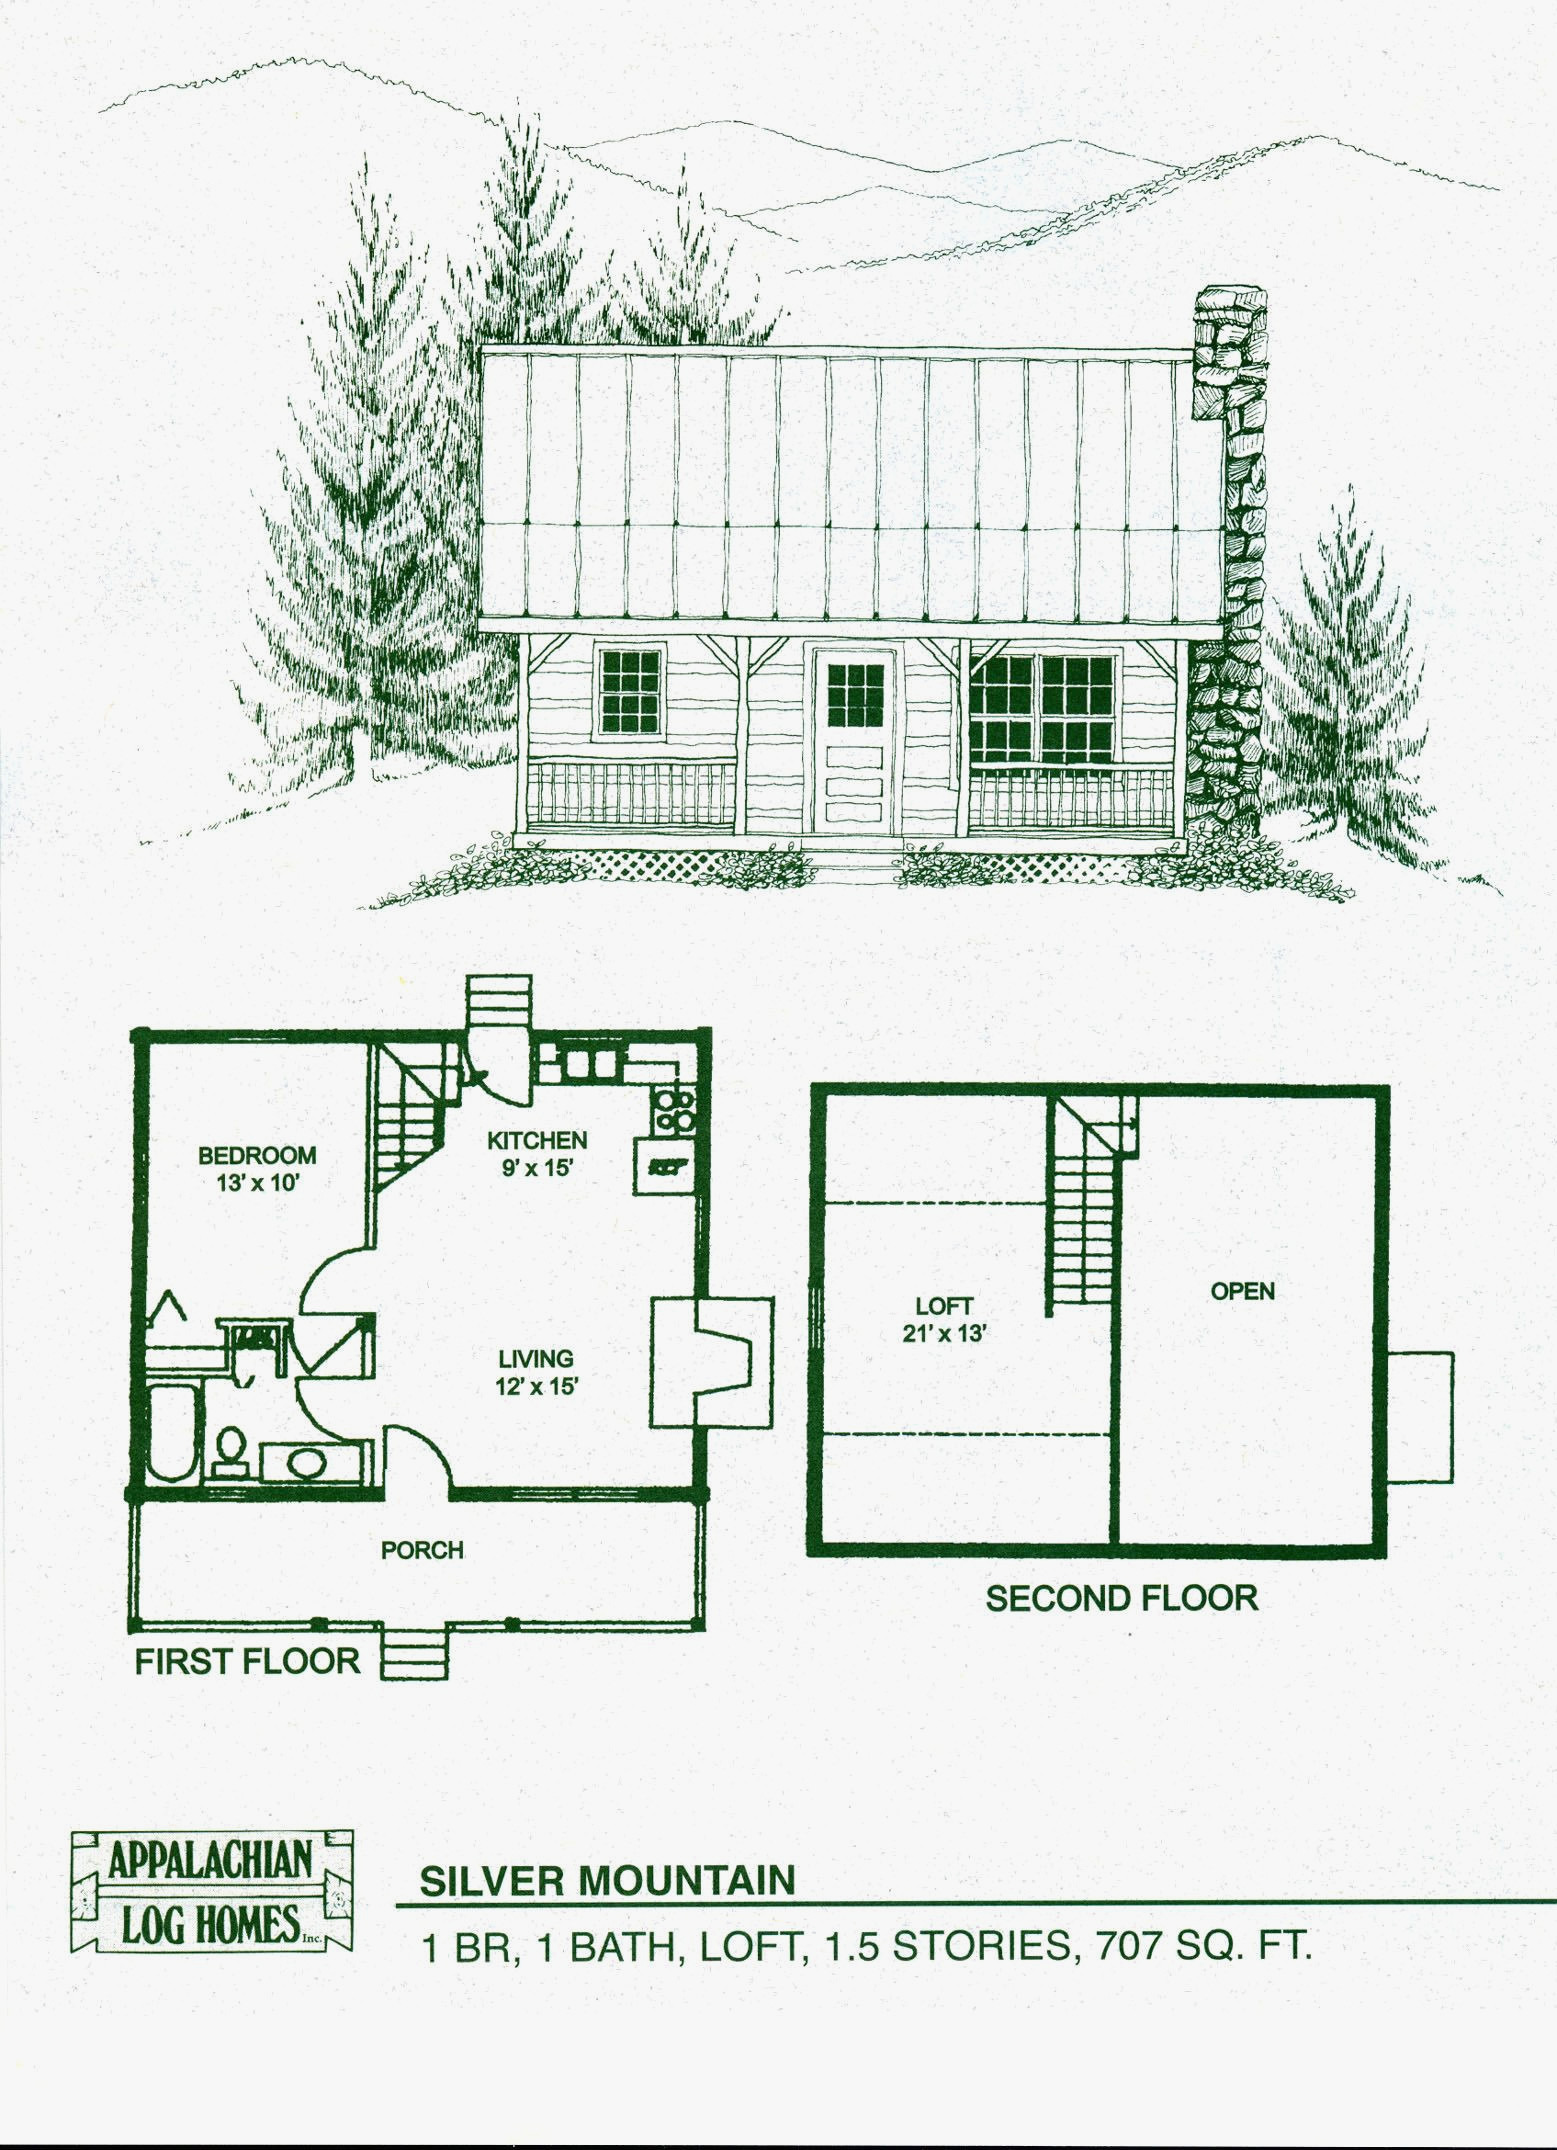 small cabins with loft floor plans awesome small cabin with loft floorplans of small cabins with loft floor plans